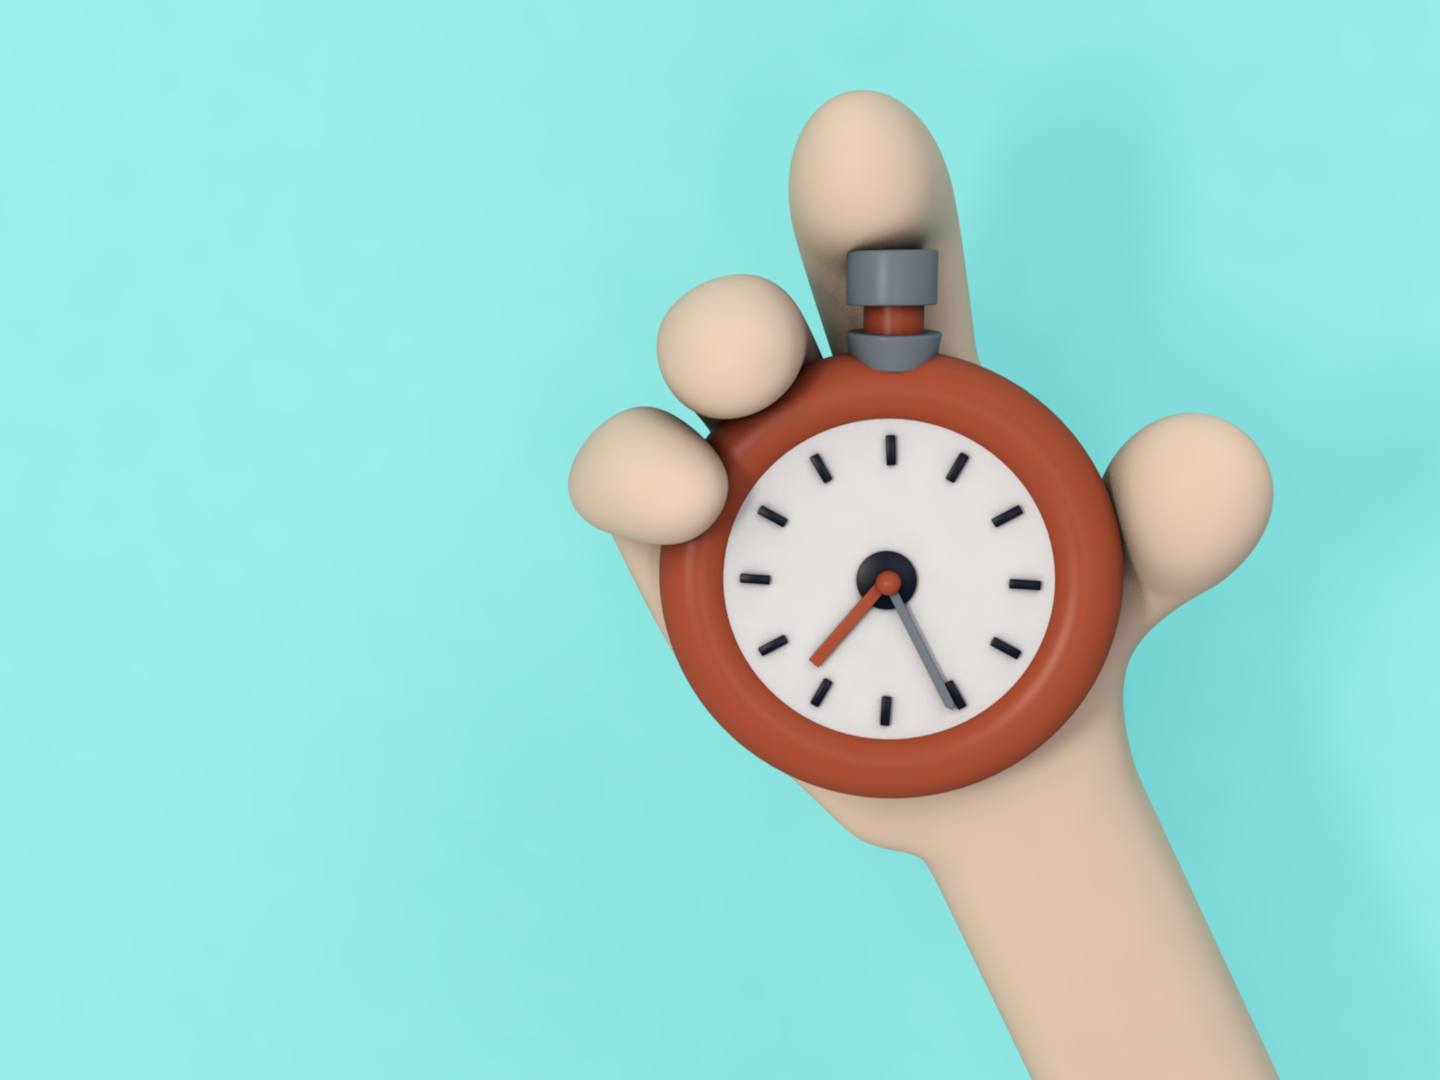 Time is running out! aiga box modeling cinema 4d cinema4d 3d